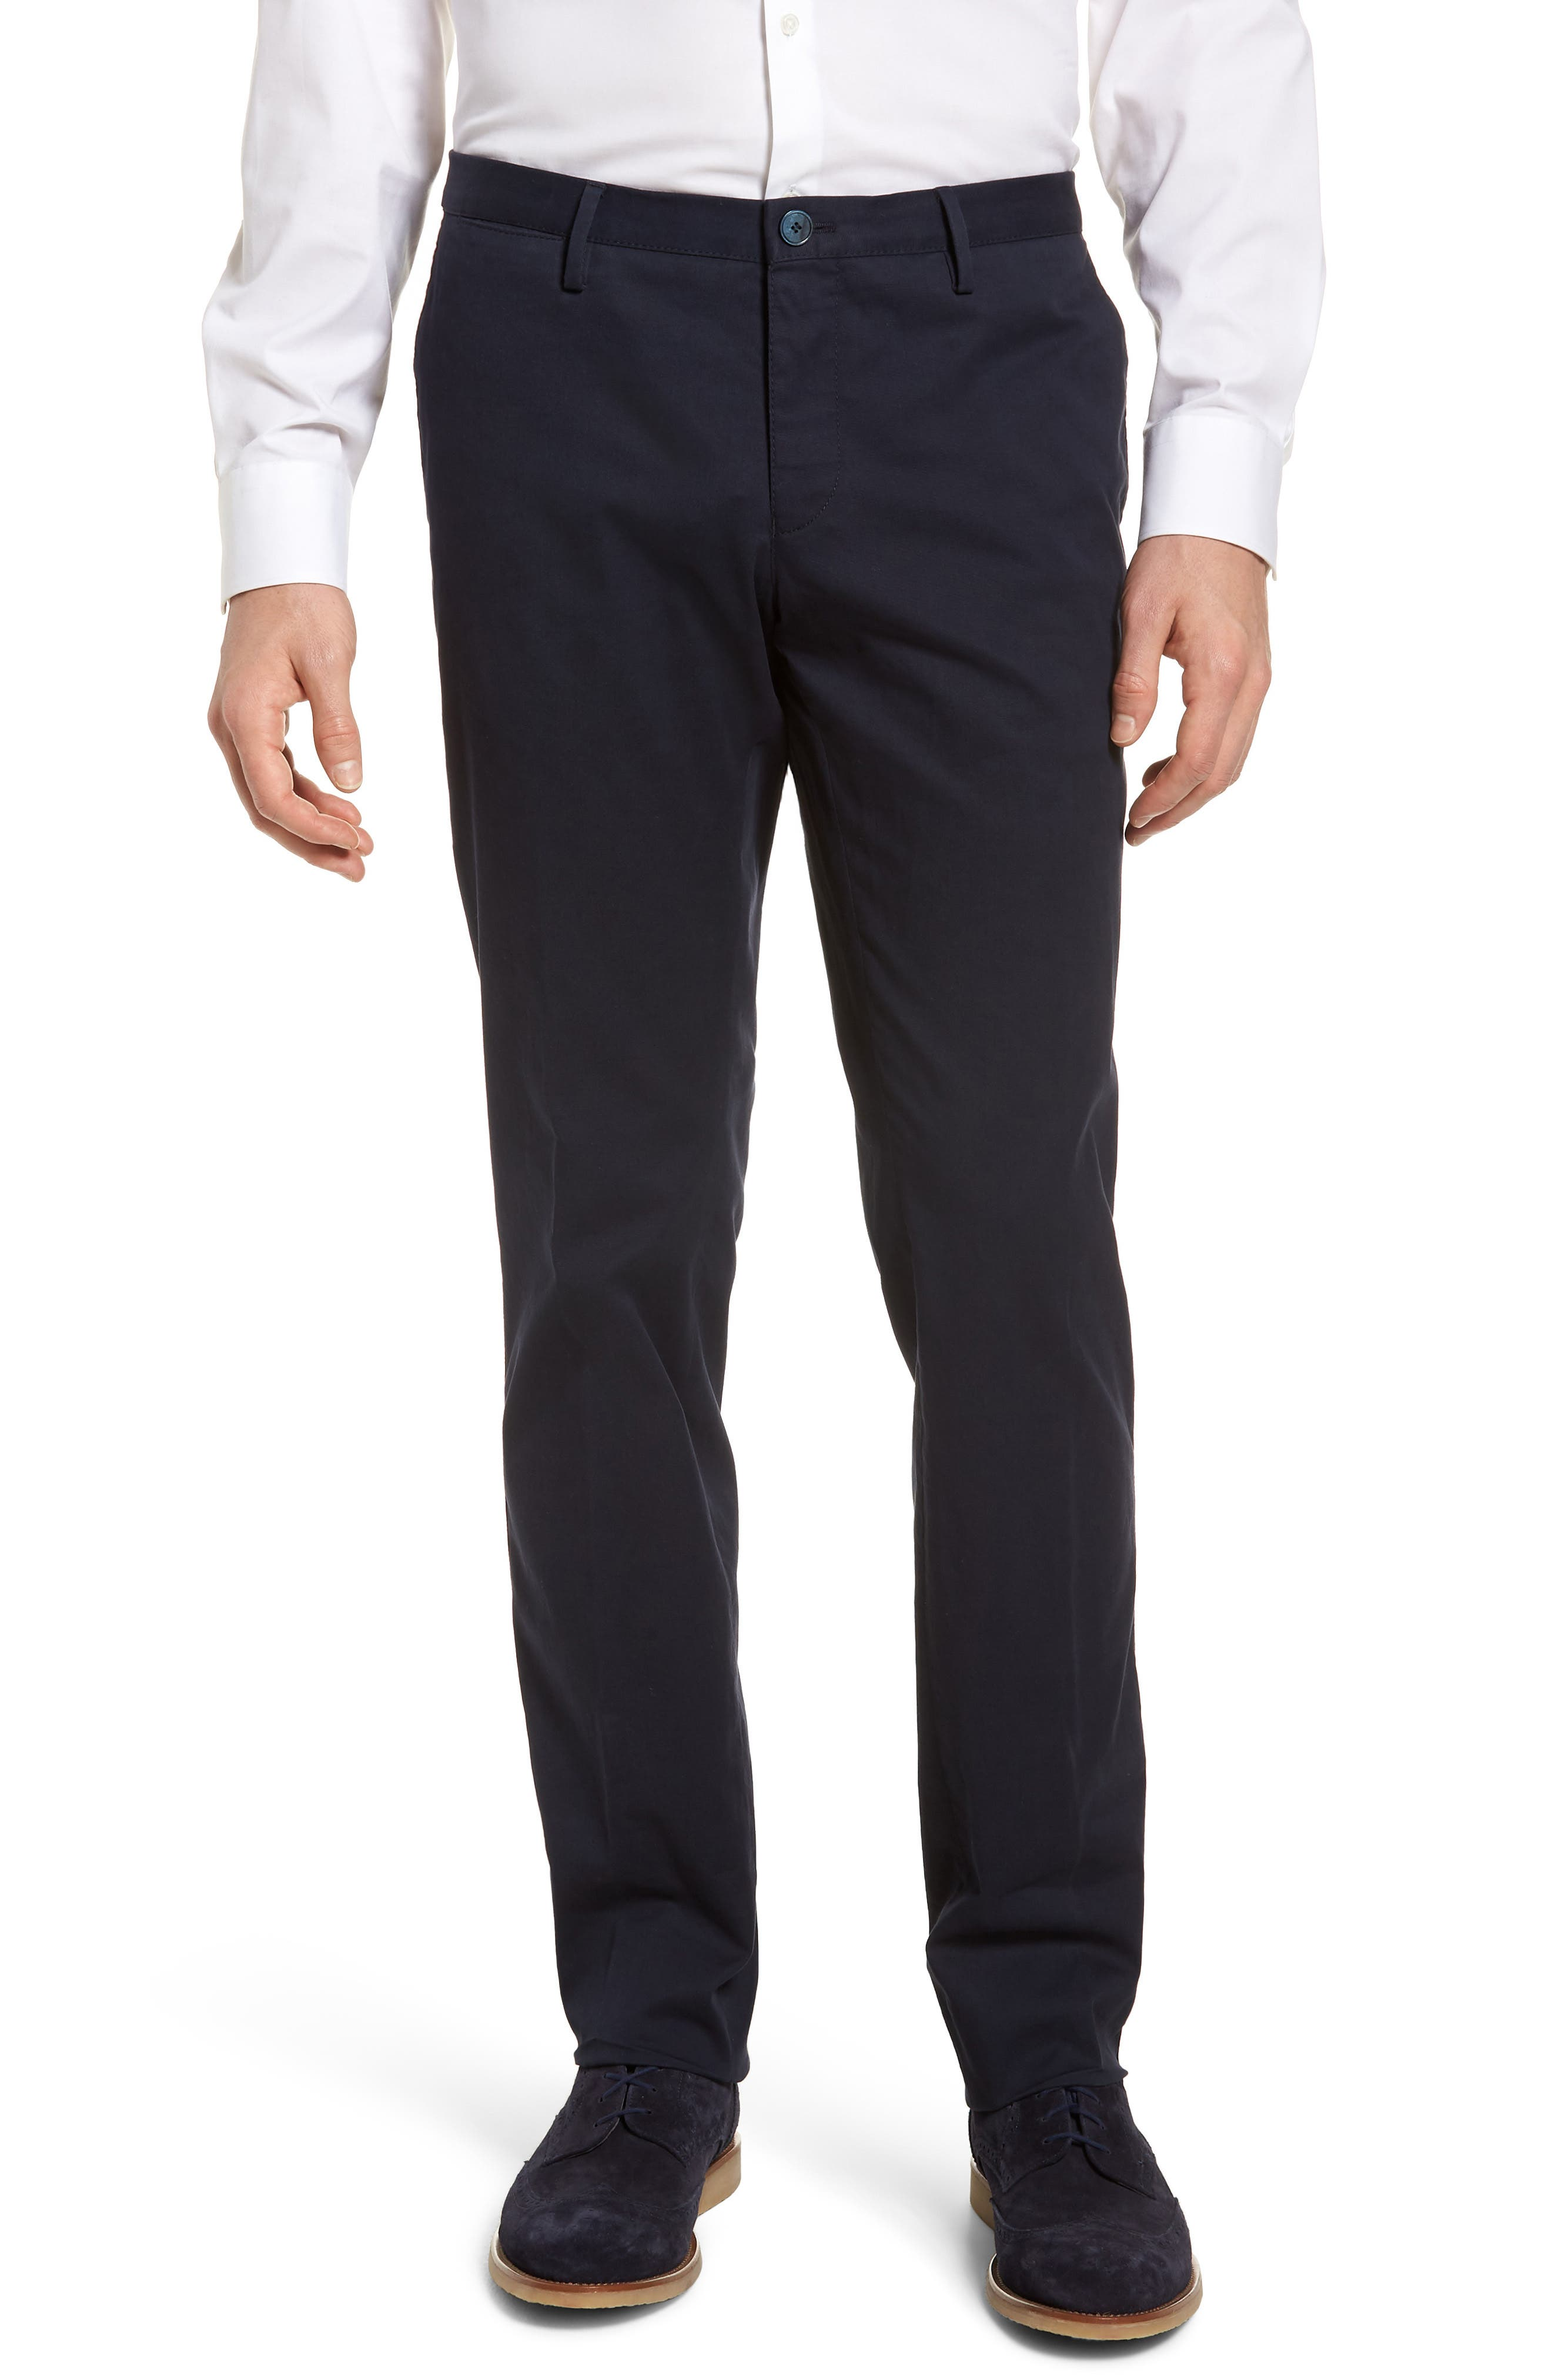 Stanino-W Flat Front Stretch Cotton Trousers,                         Main,                         color, Navy